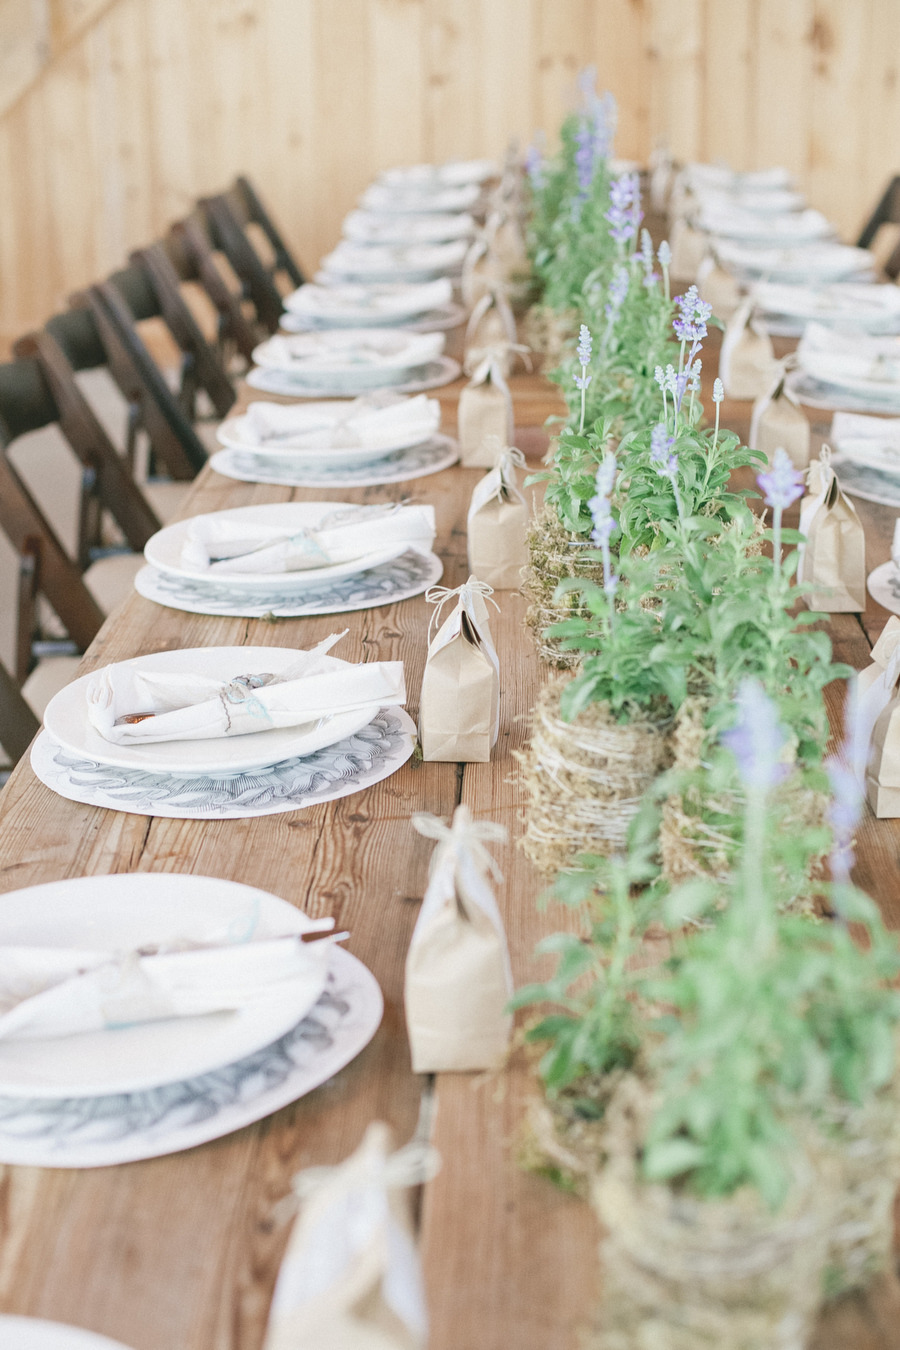 Wedding Centerpieces Extravagant Or Simple